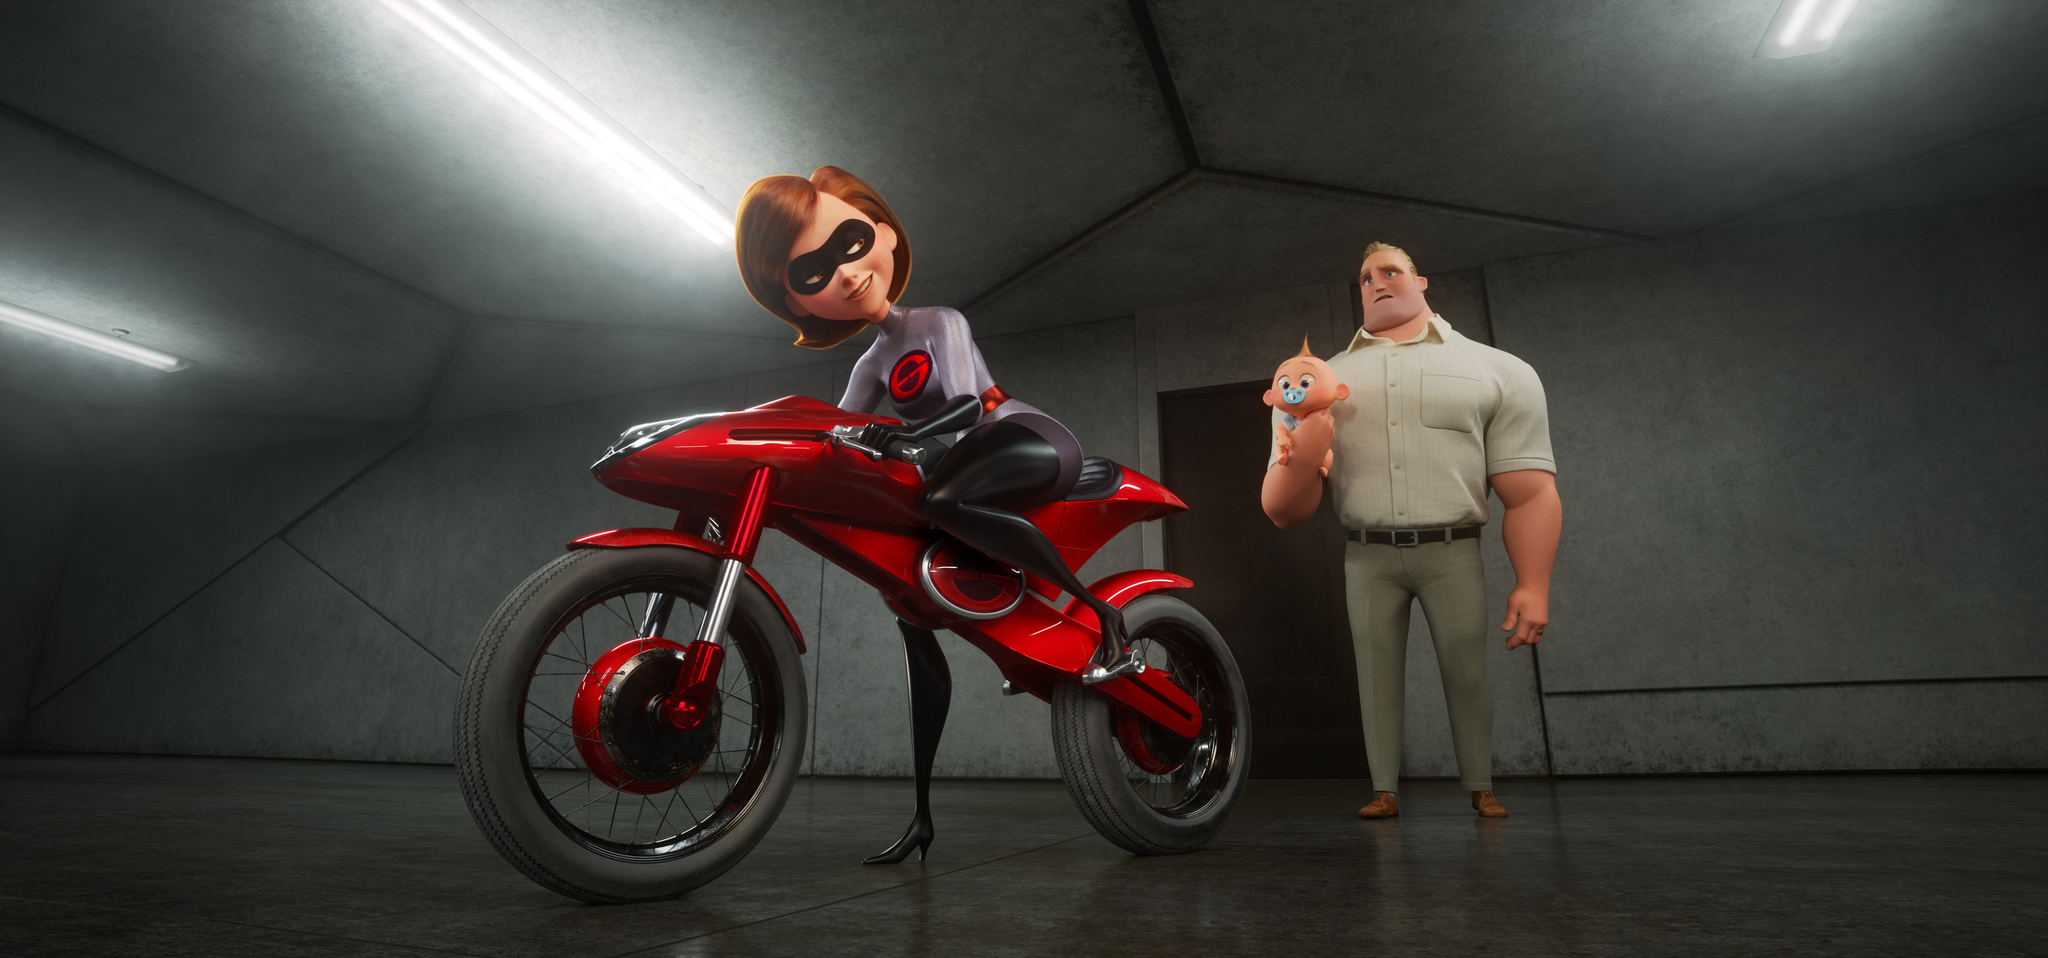 Holly Hunter, Craig T. Nelson, and Eli Fucile in Incredibles 2 (2018)